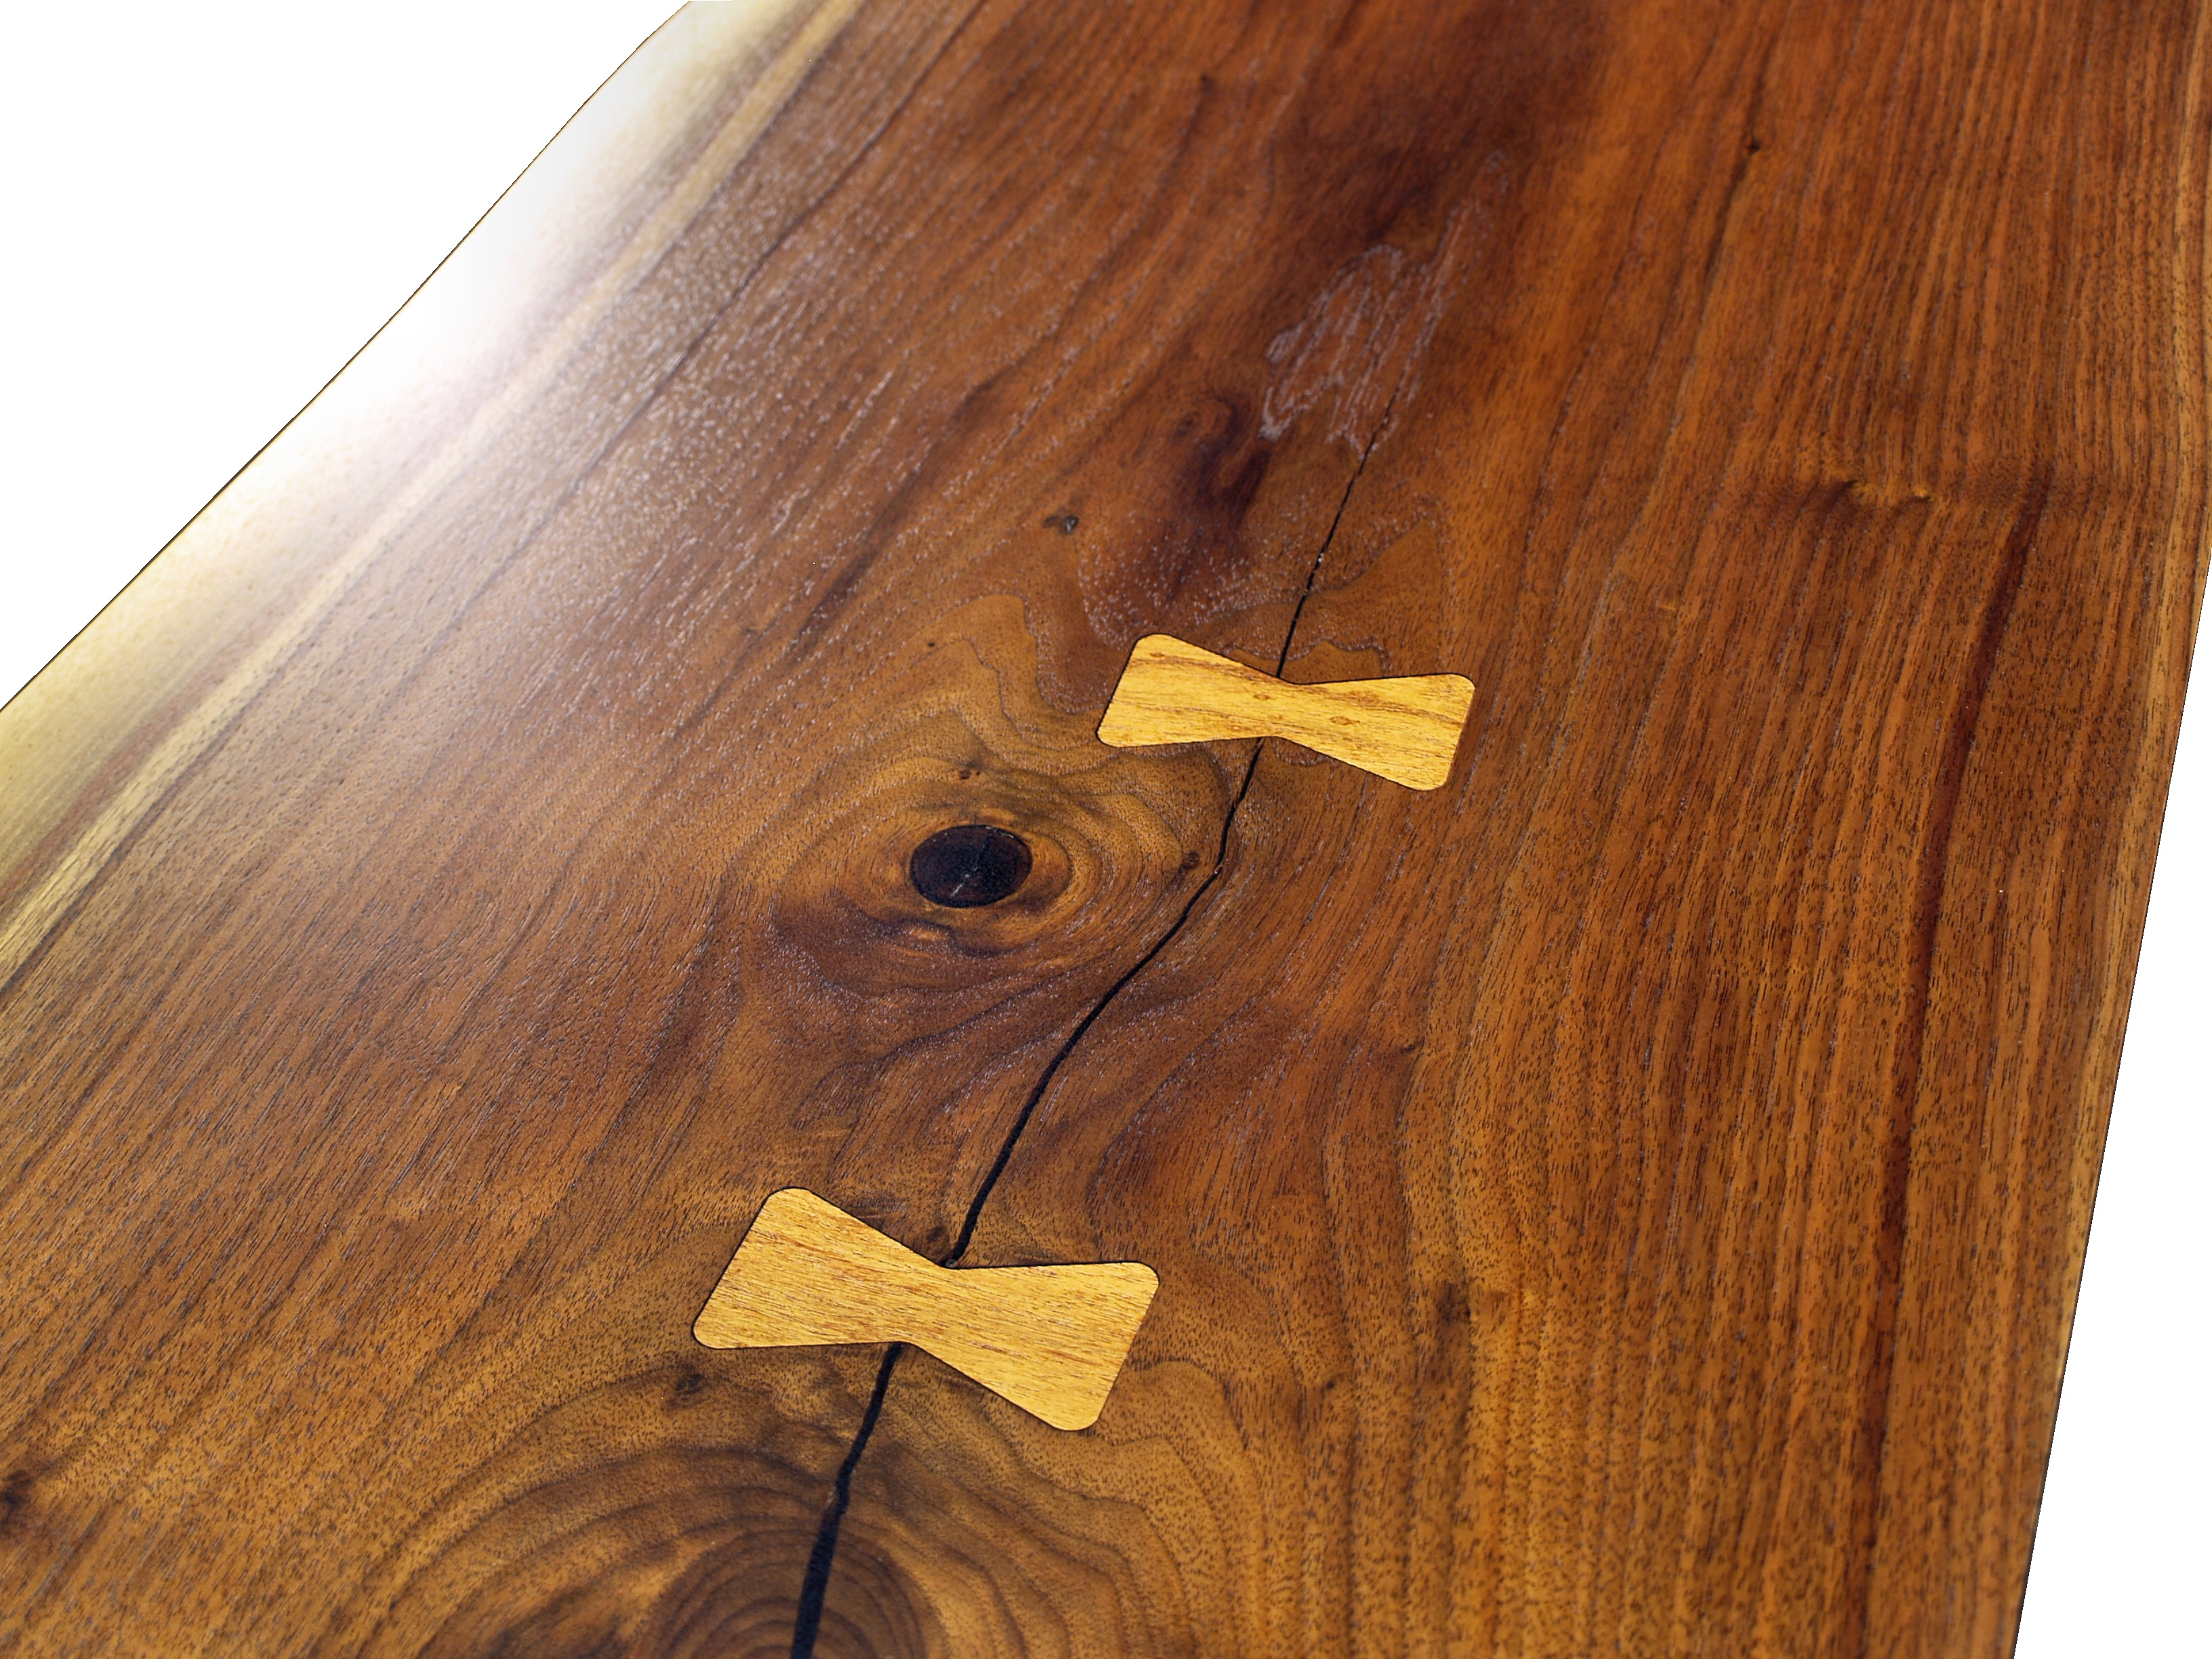 Charming Pecan Butterfly Inlays In Texas Walnut Table Top.